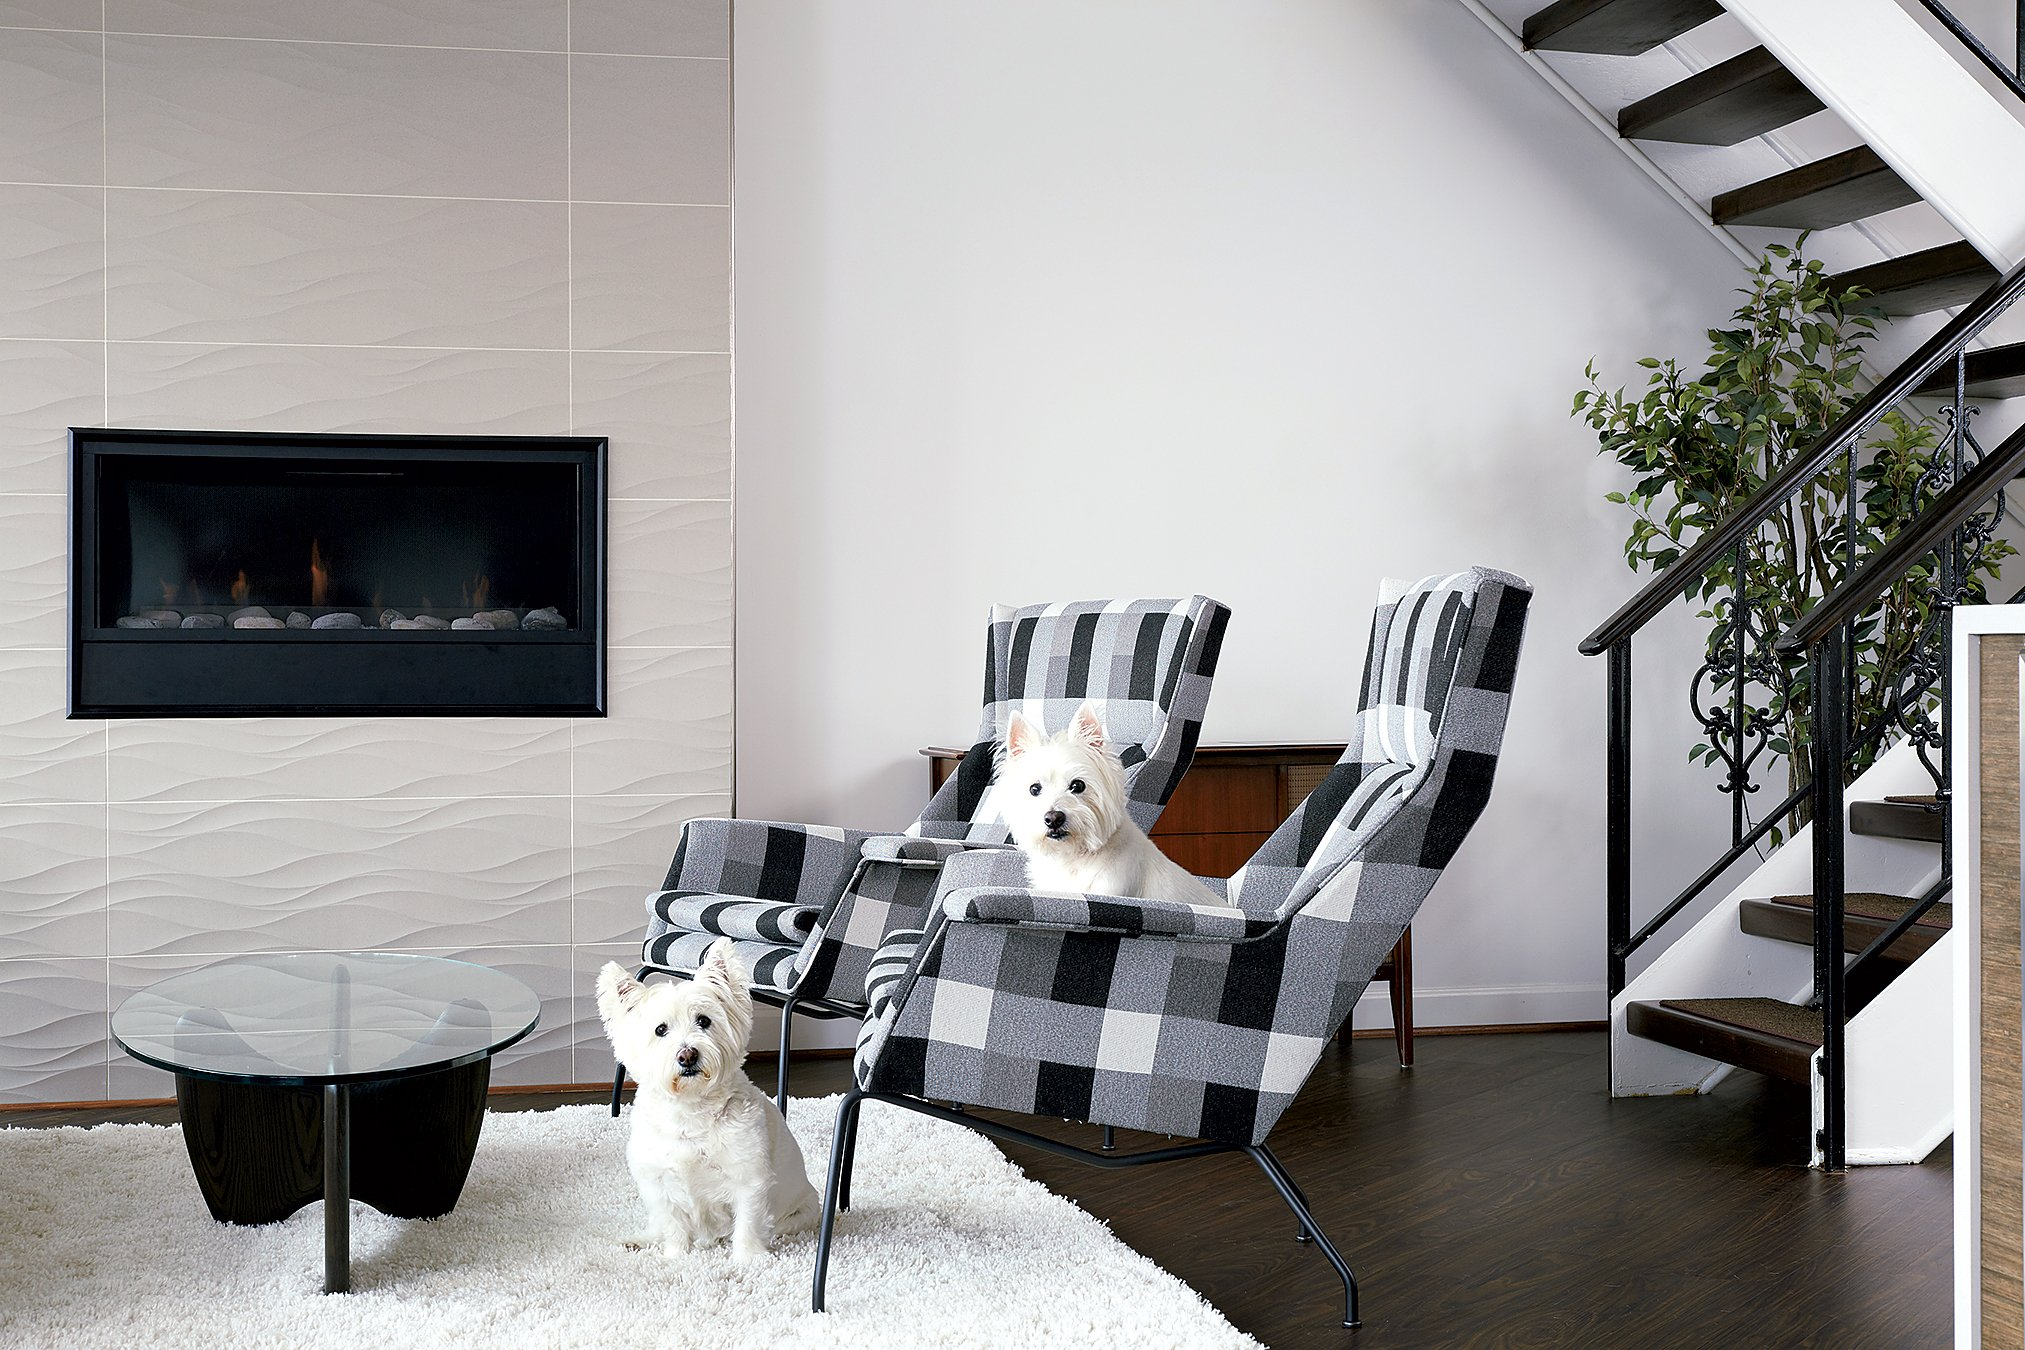 Coretec vinyl flooring—which looks like black walnut—can stand up to wear from their two West Highland terriers. Photograph by Stacy Zarin Goldberg.